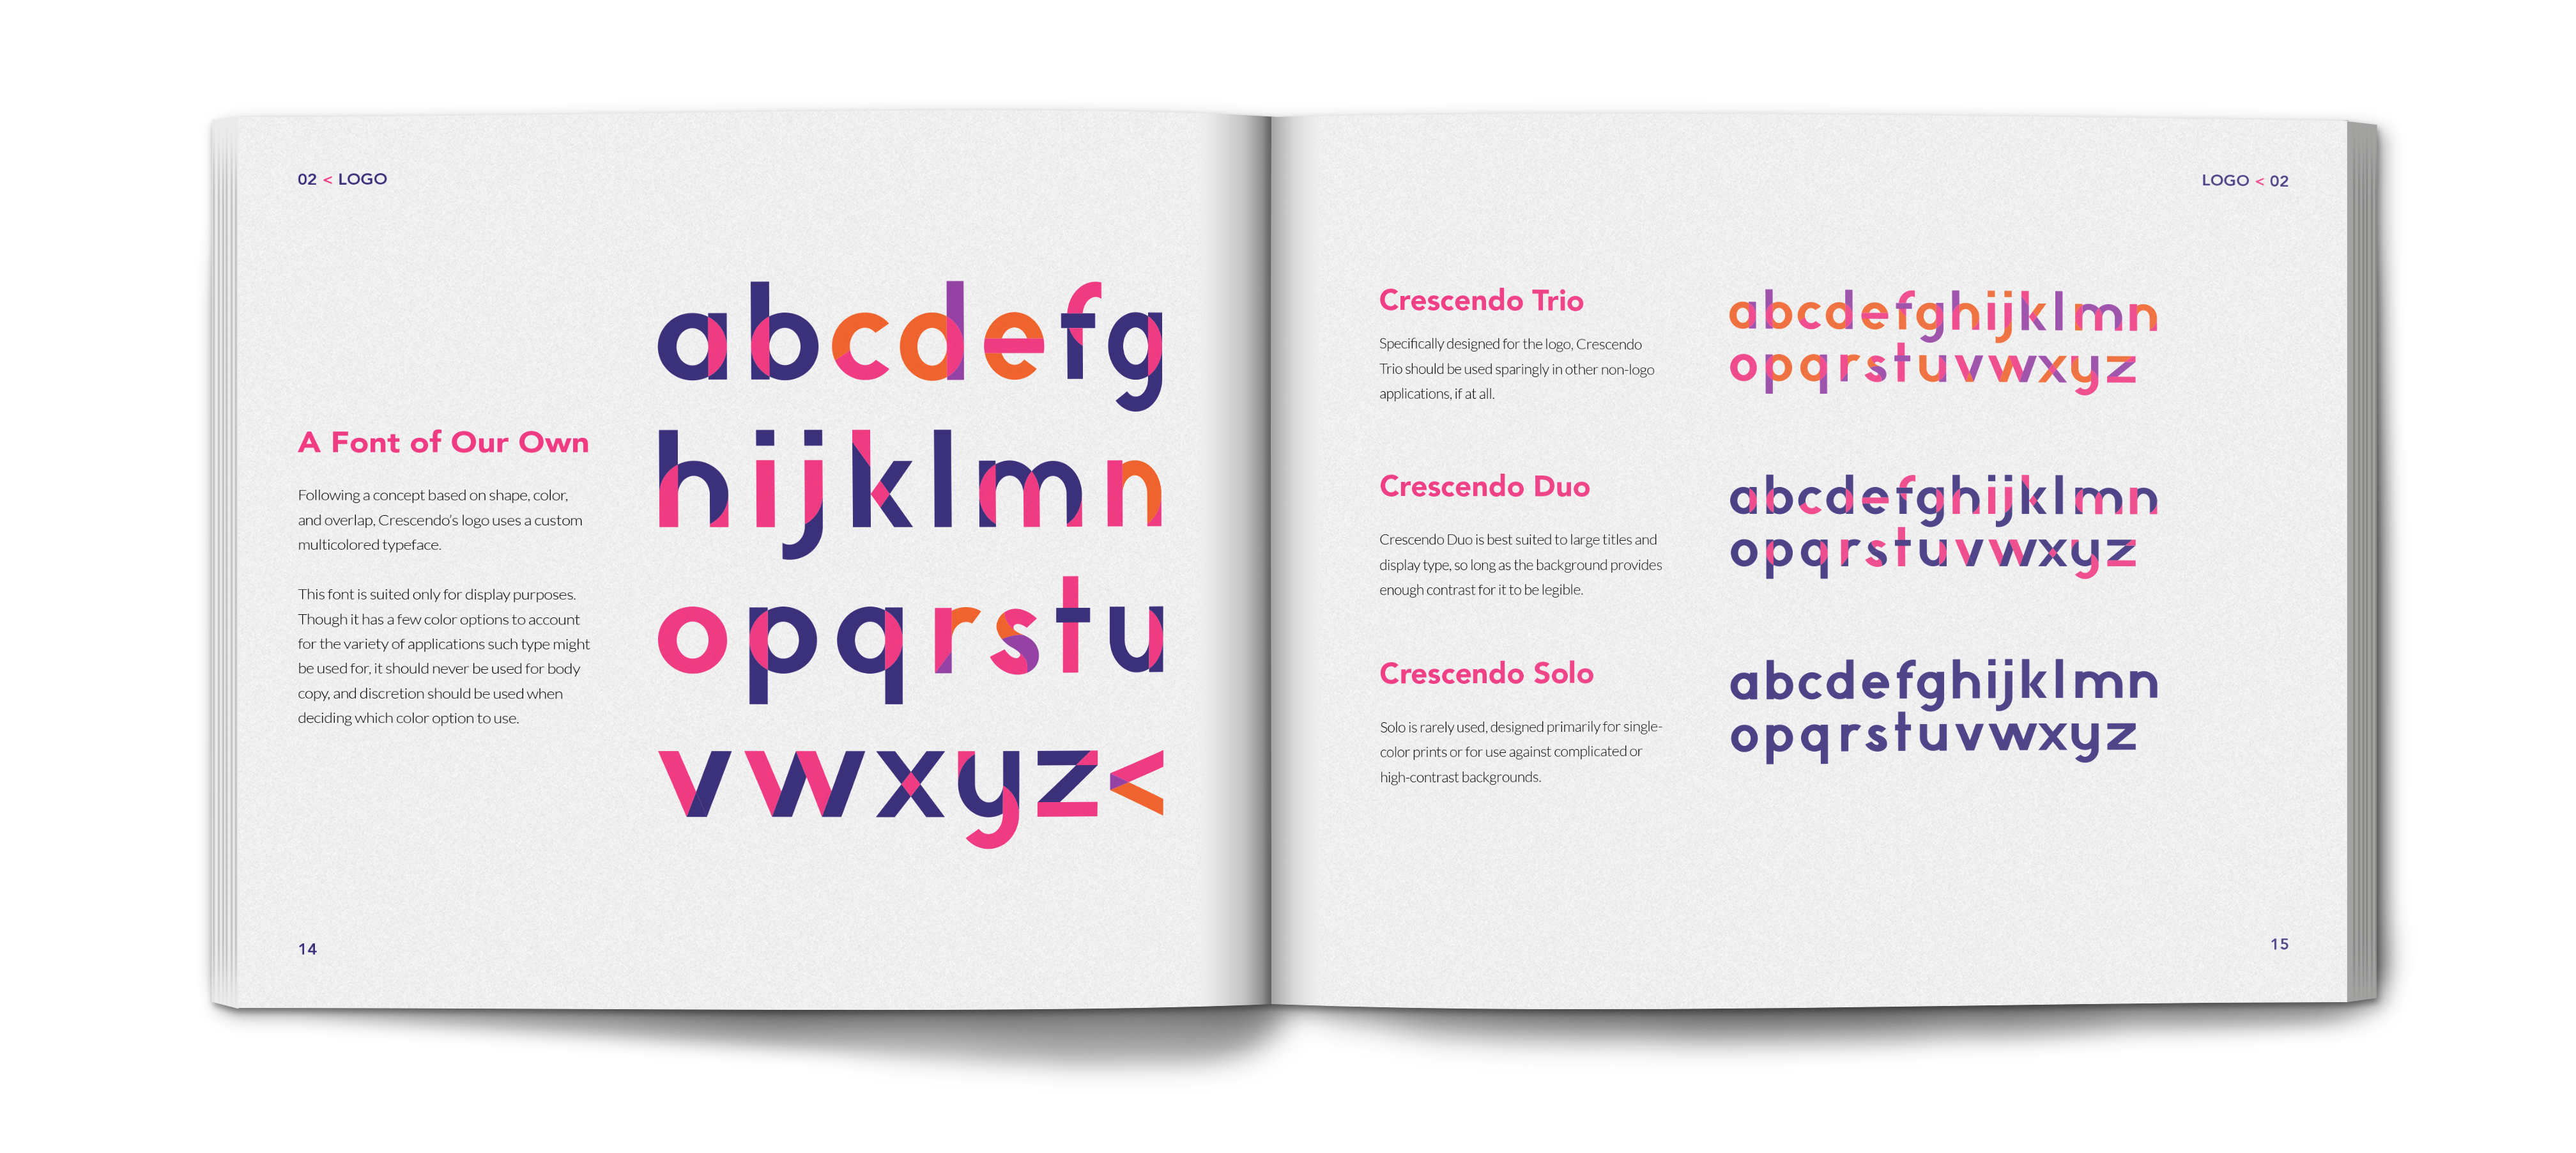 crescendo brand identity book showing the crescendo fonts